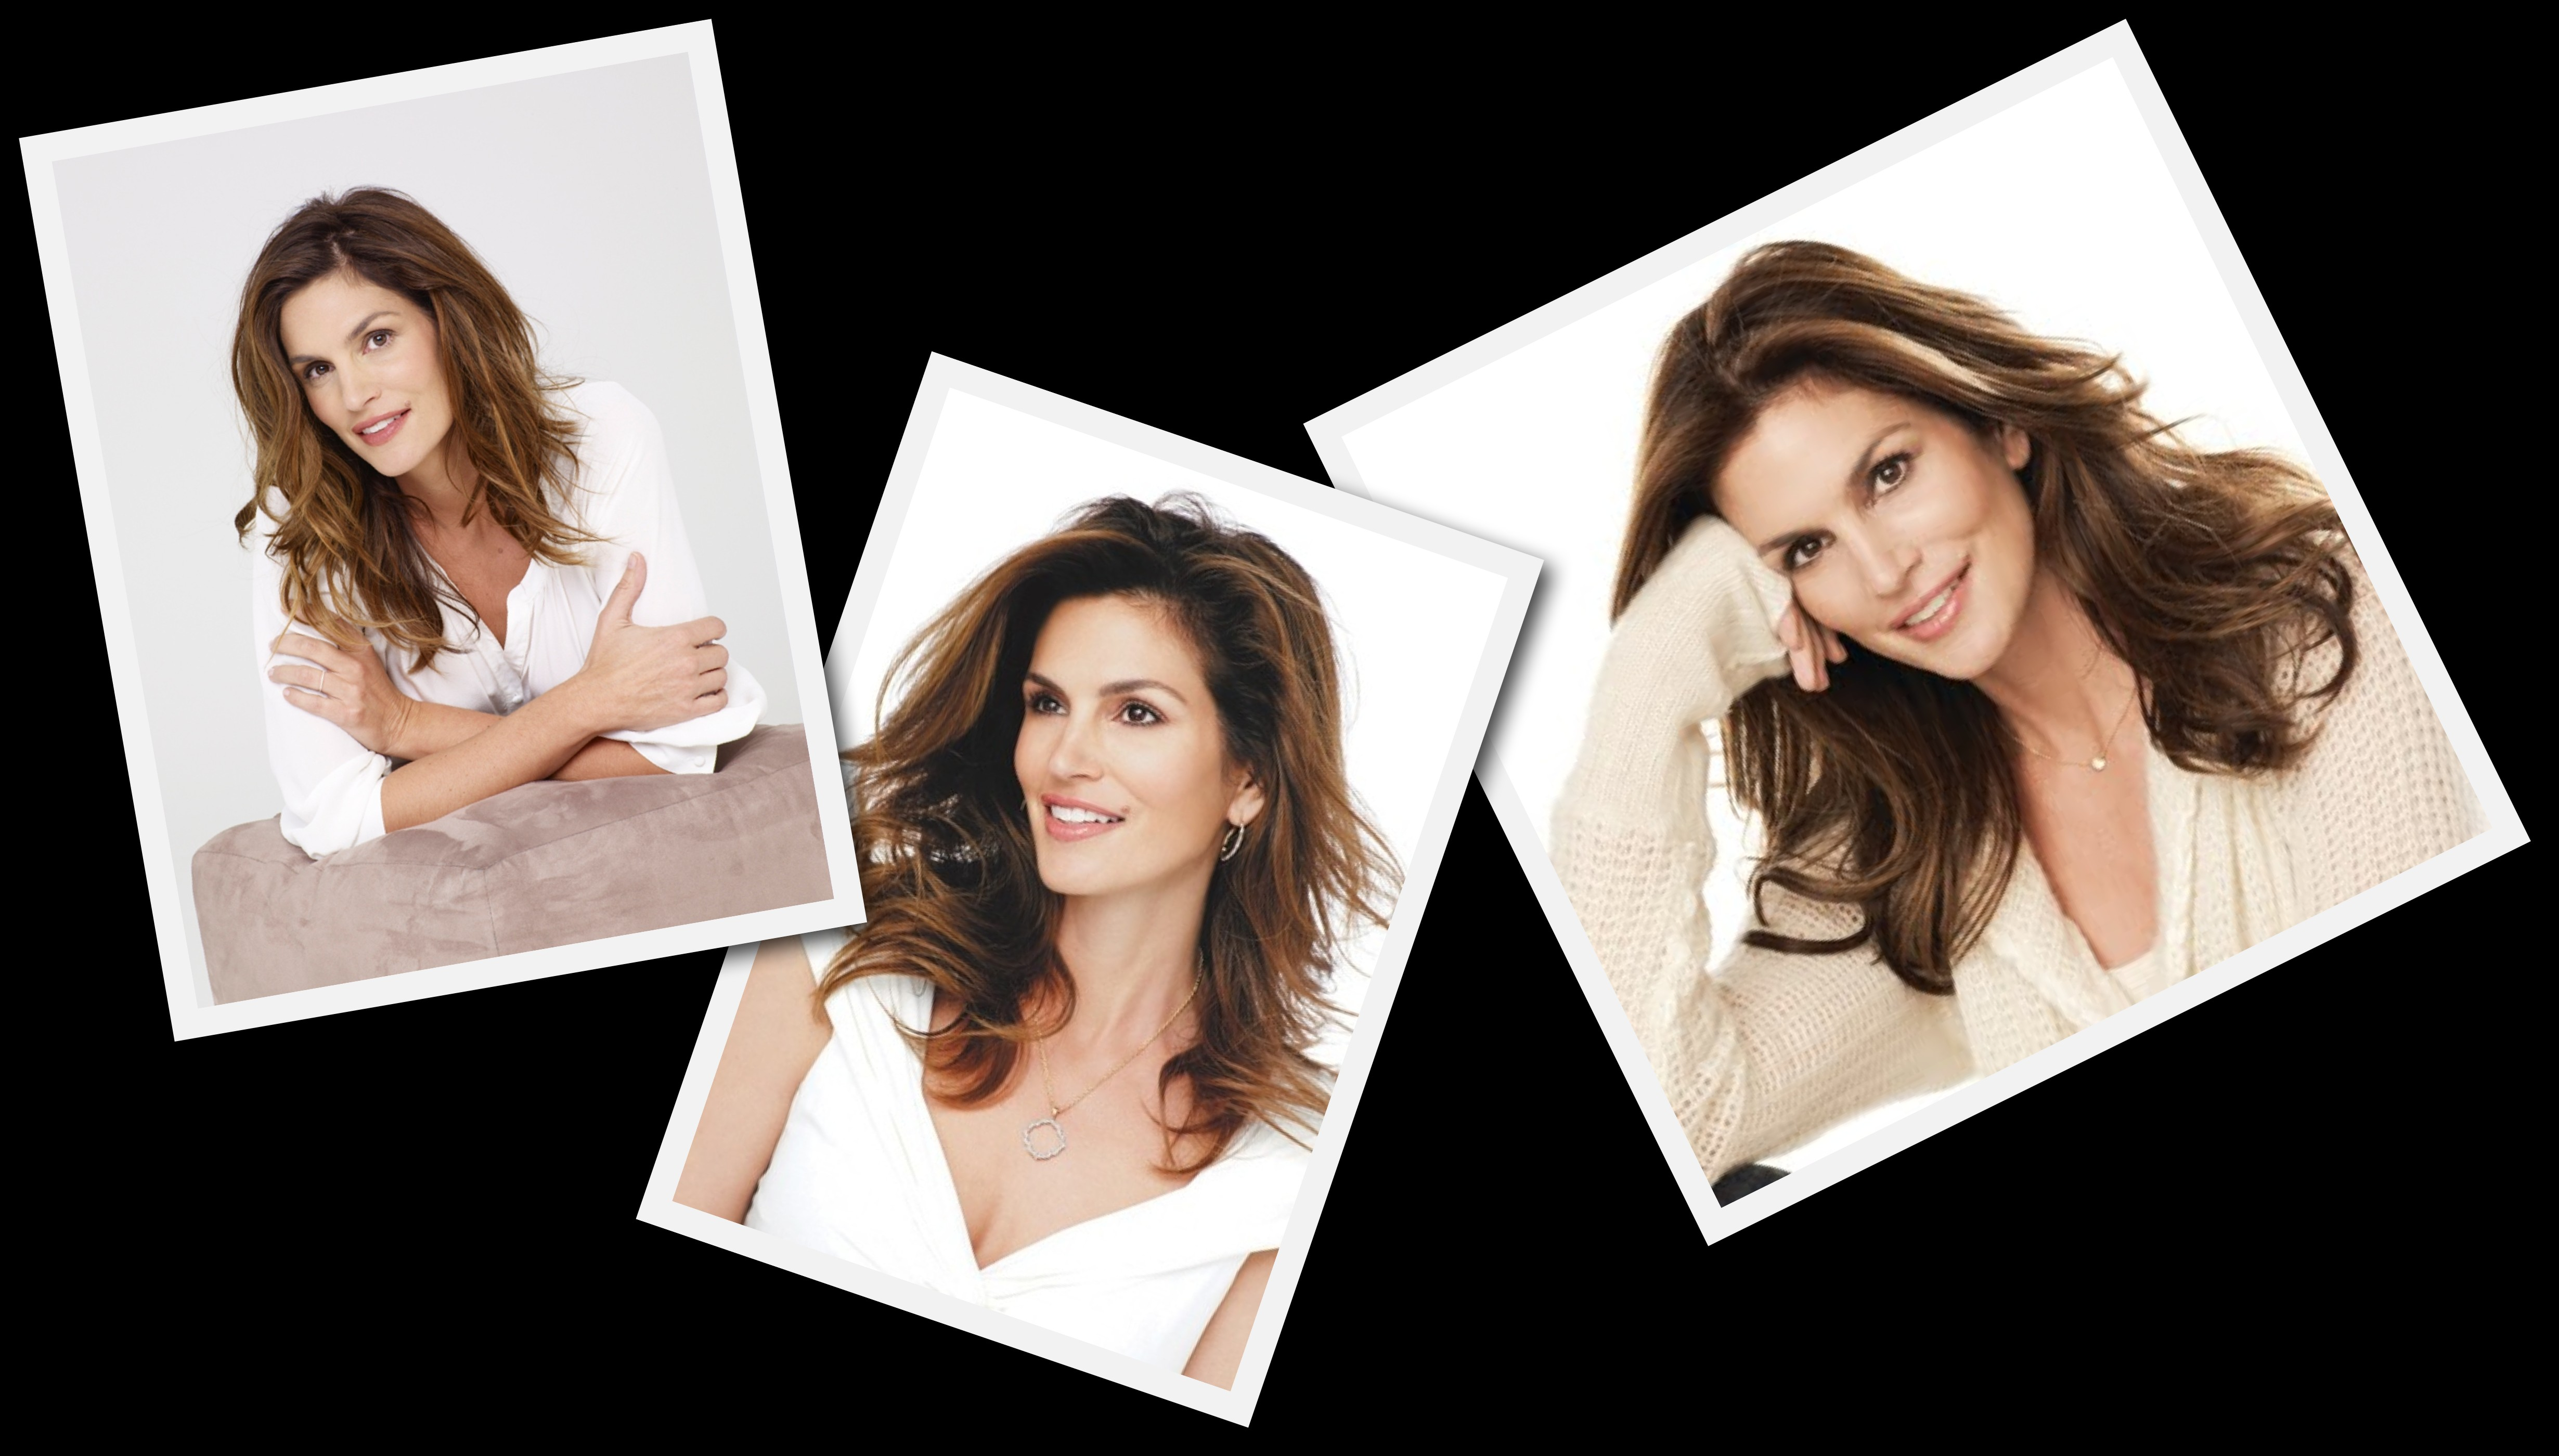 cindy Crawford's first modeling job as a teenager was a lingerie advertisement to ...